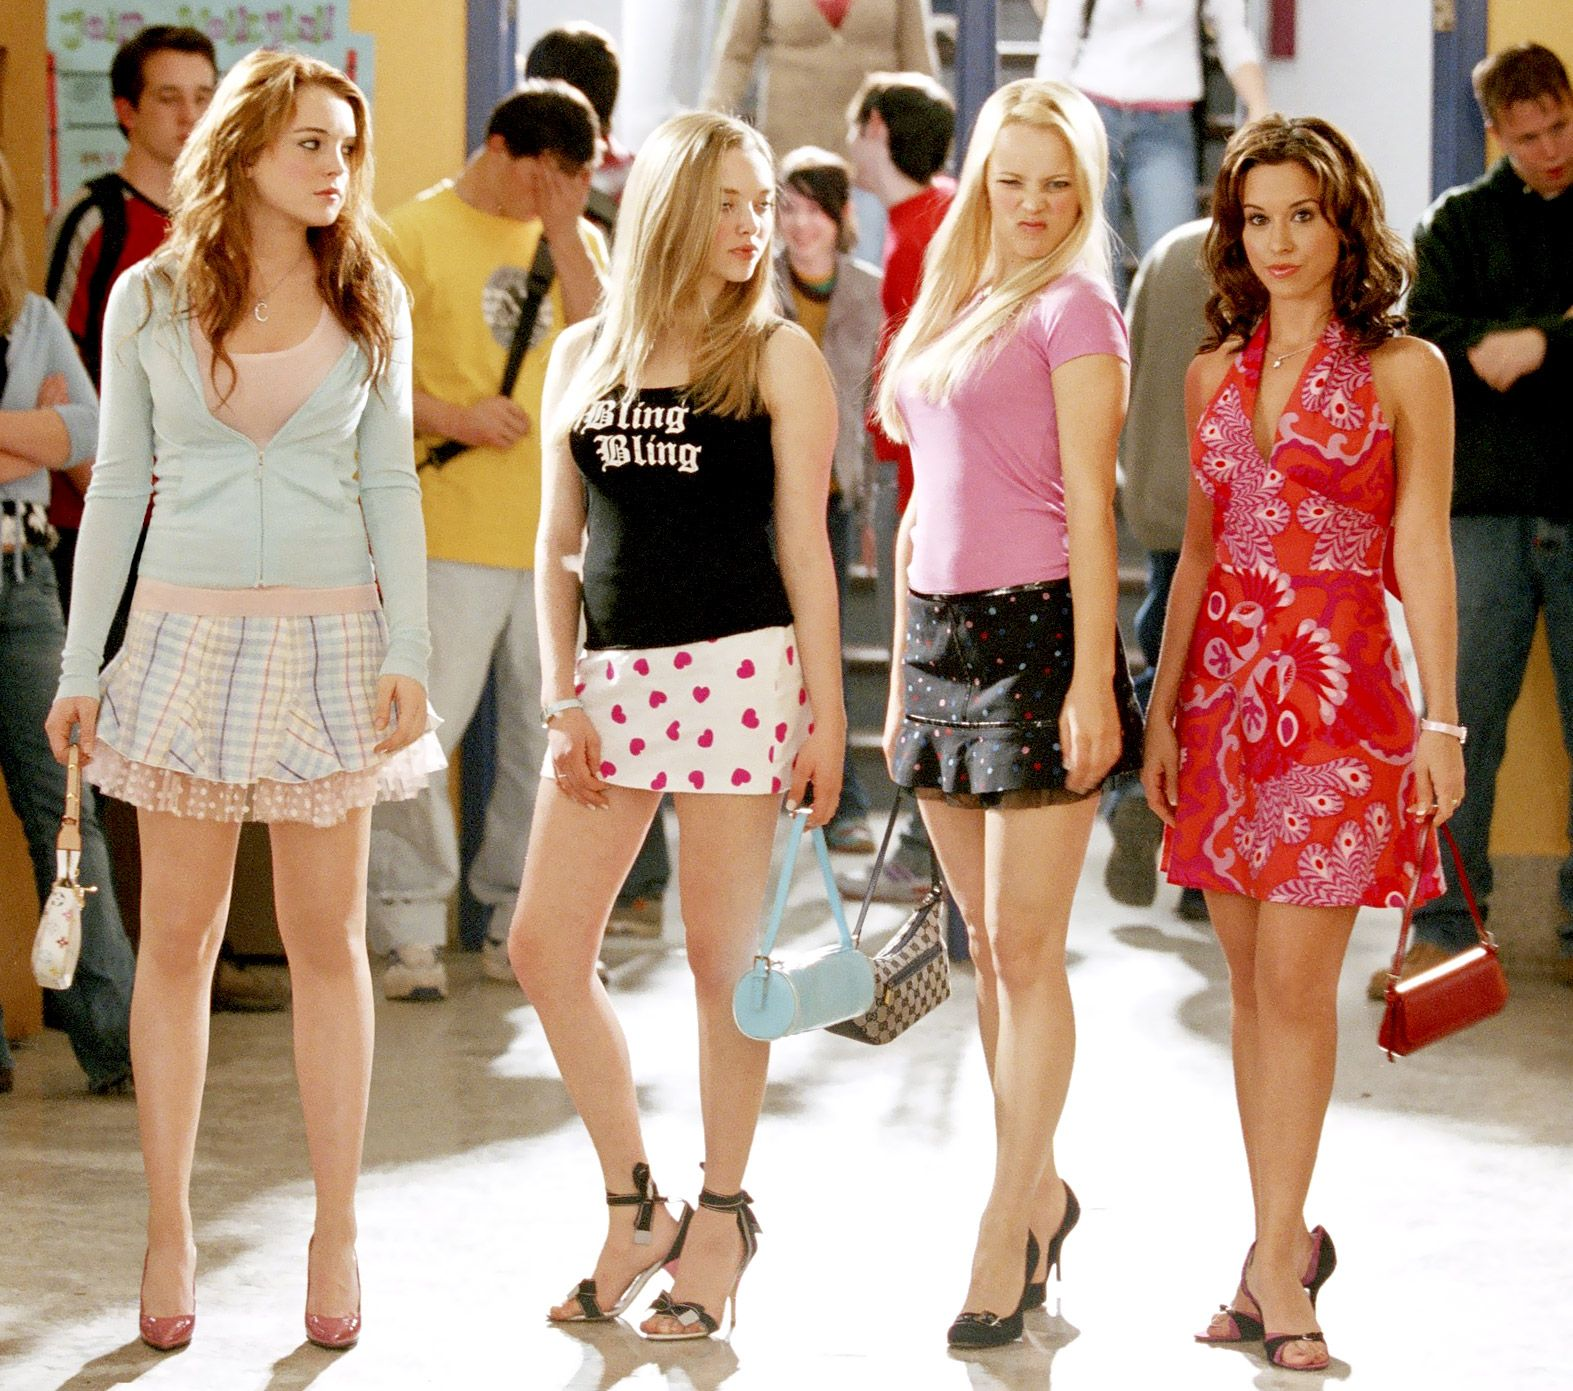 1. Mean Girls